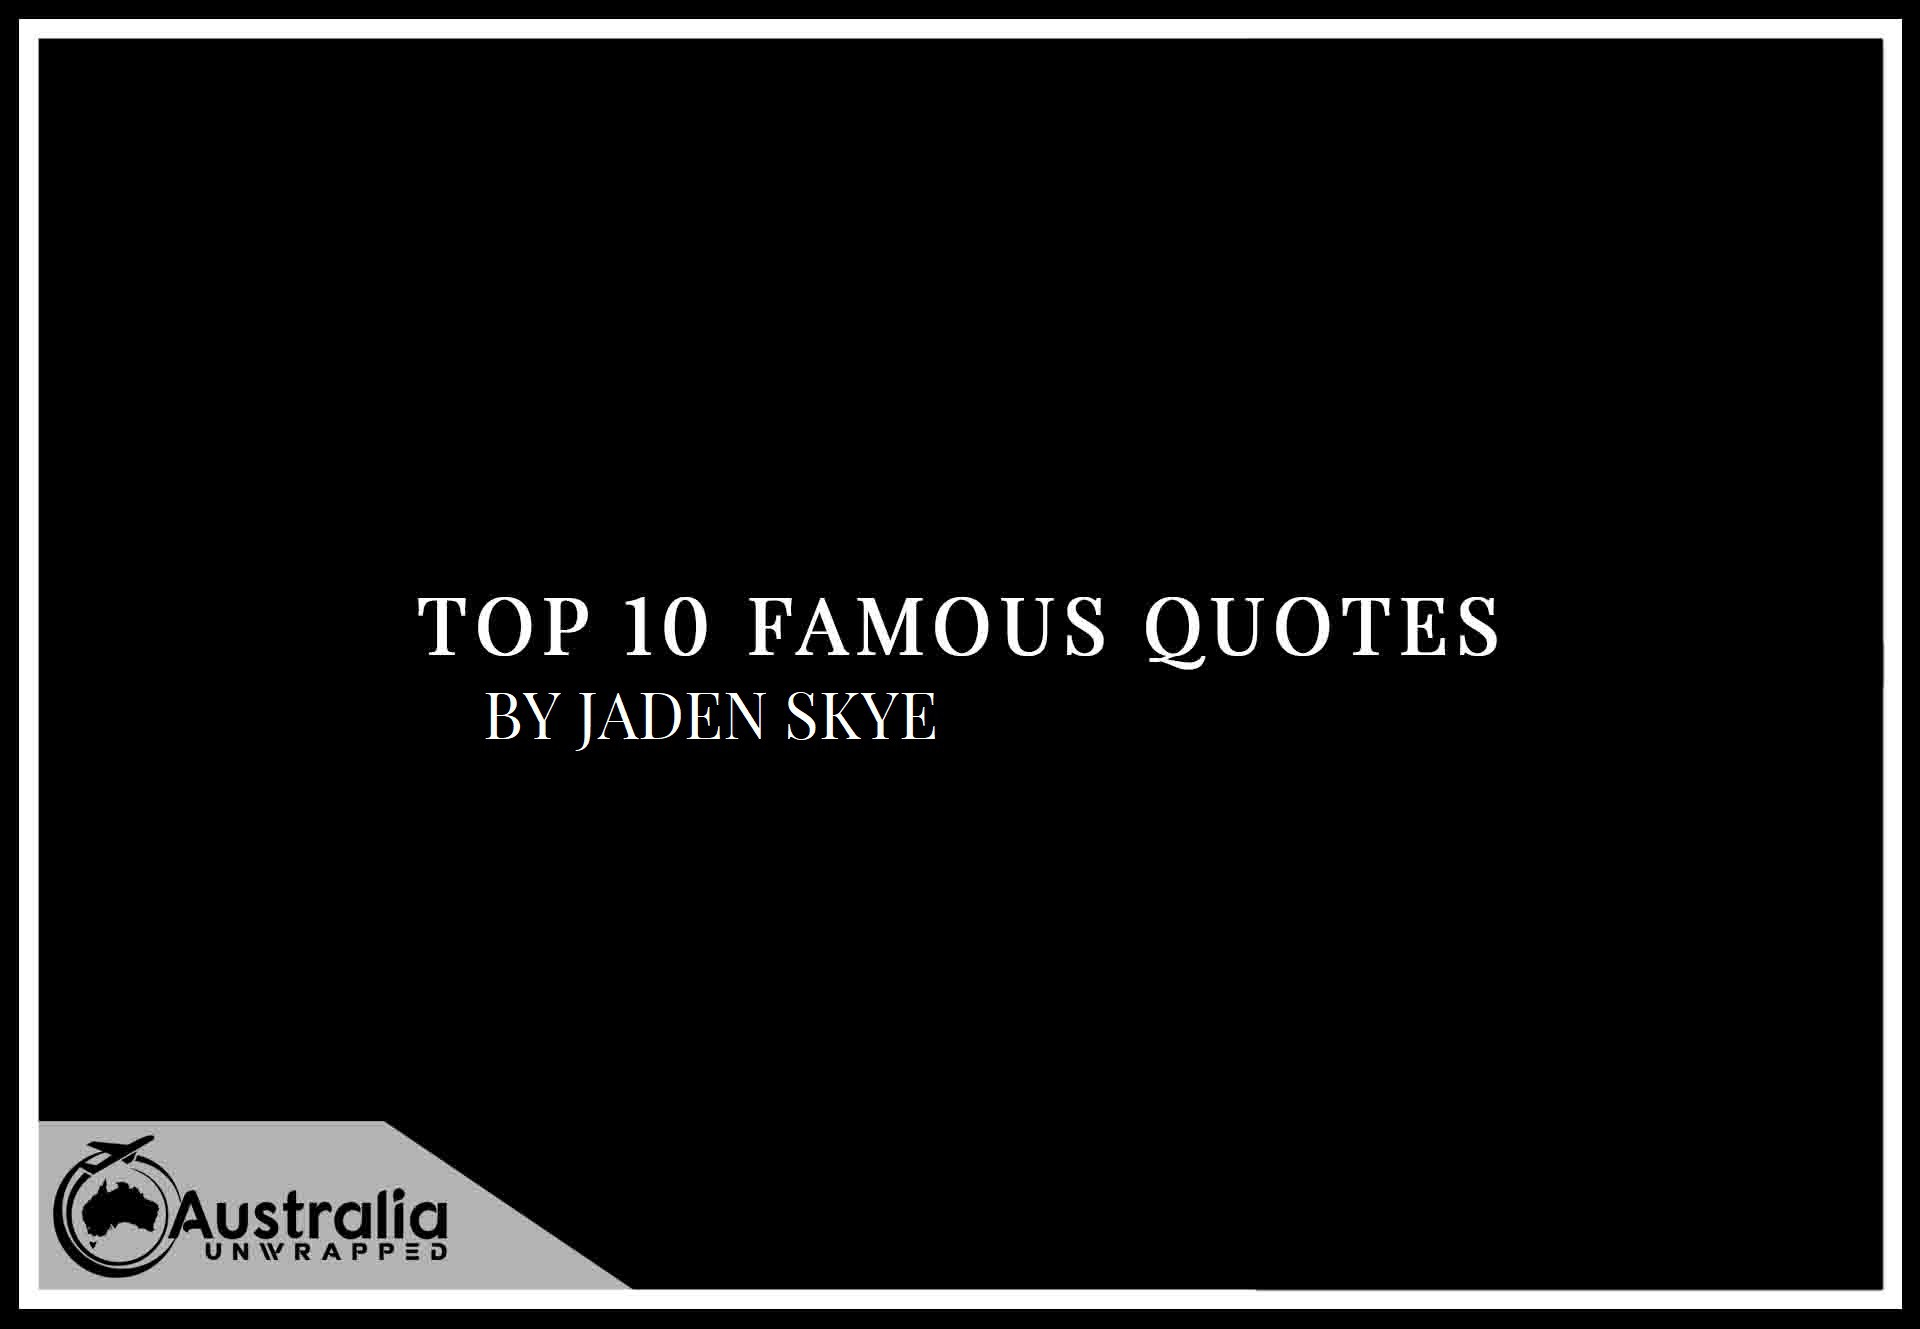 Top 10 Famous Quotes by Author Jaden Skye